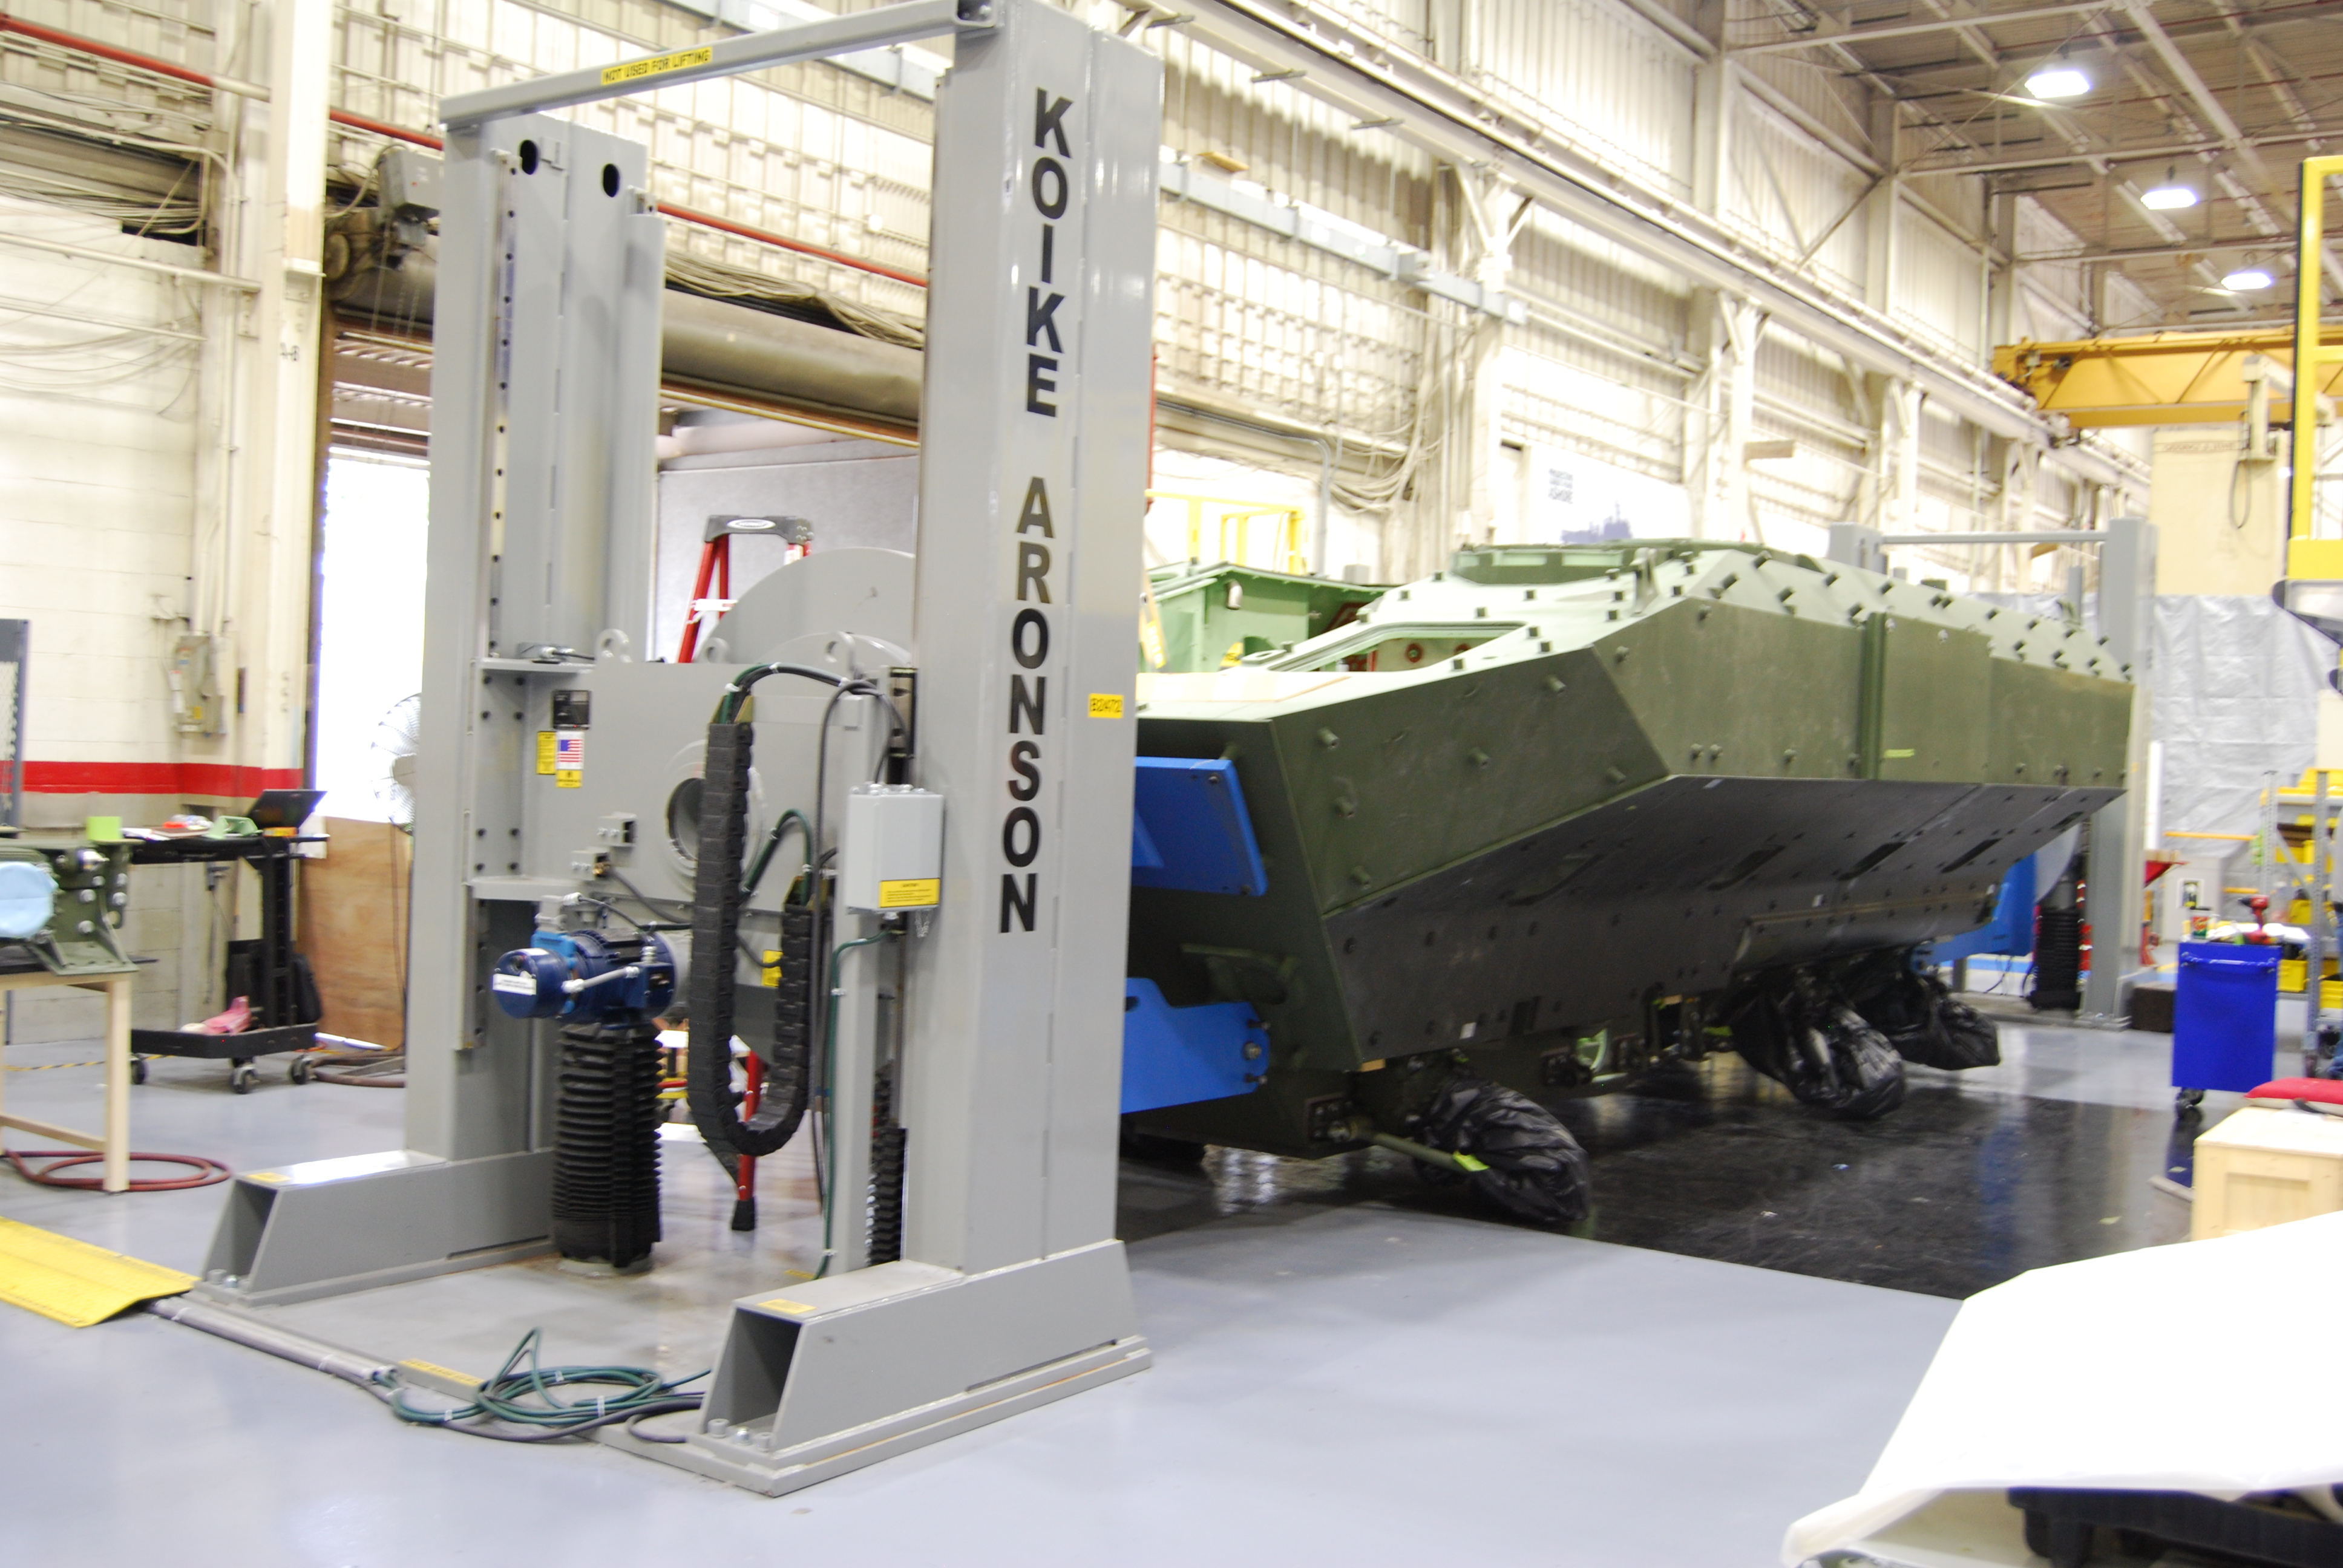 BAE Systems' first production Amphibious Combat Vehicle is attached to a turnover fixture in the welding facility to allow workers to comfortably weld all sides of the vehicle. BAE Systems photo.